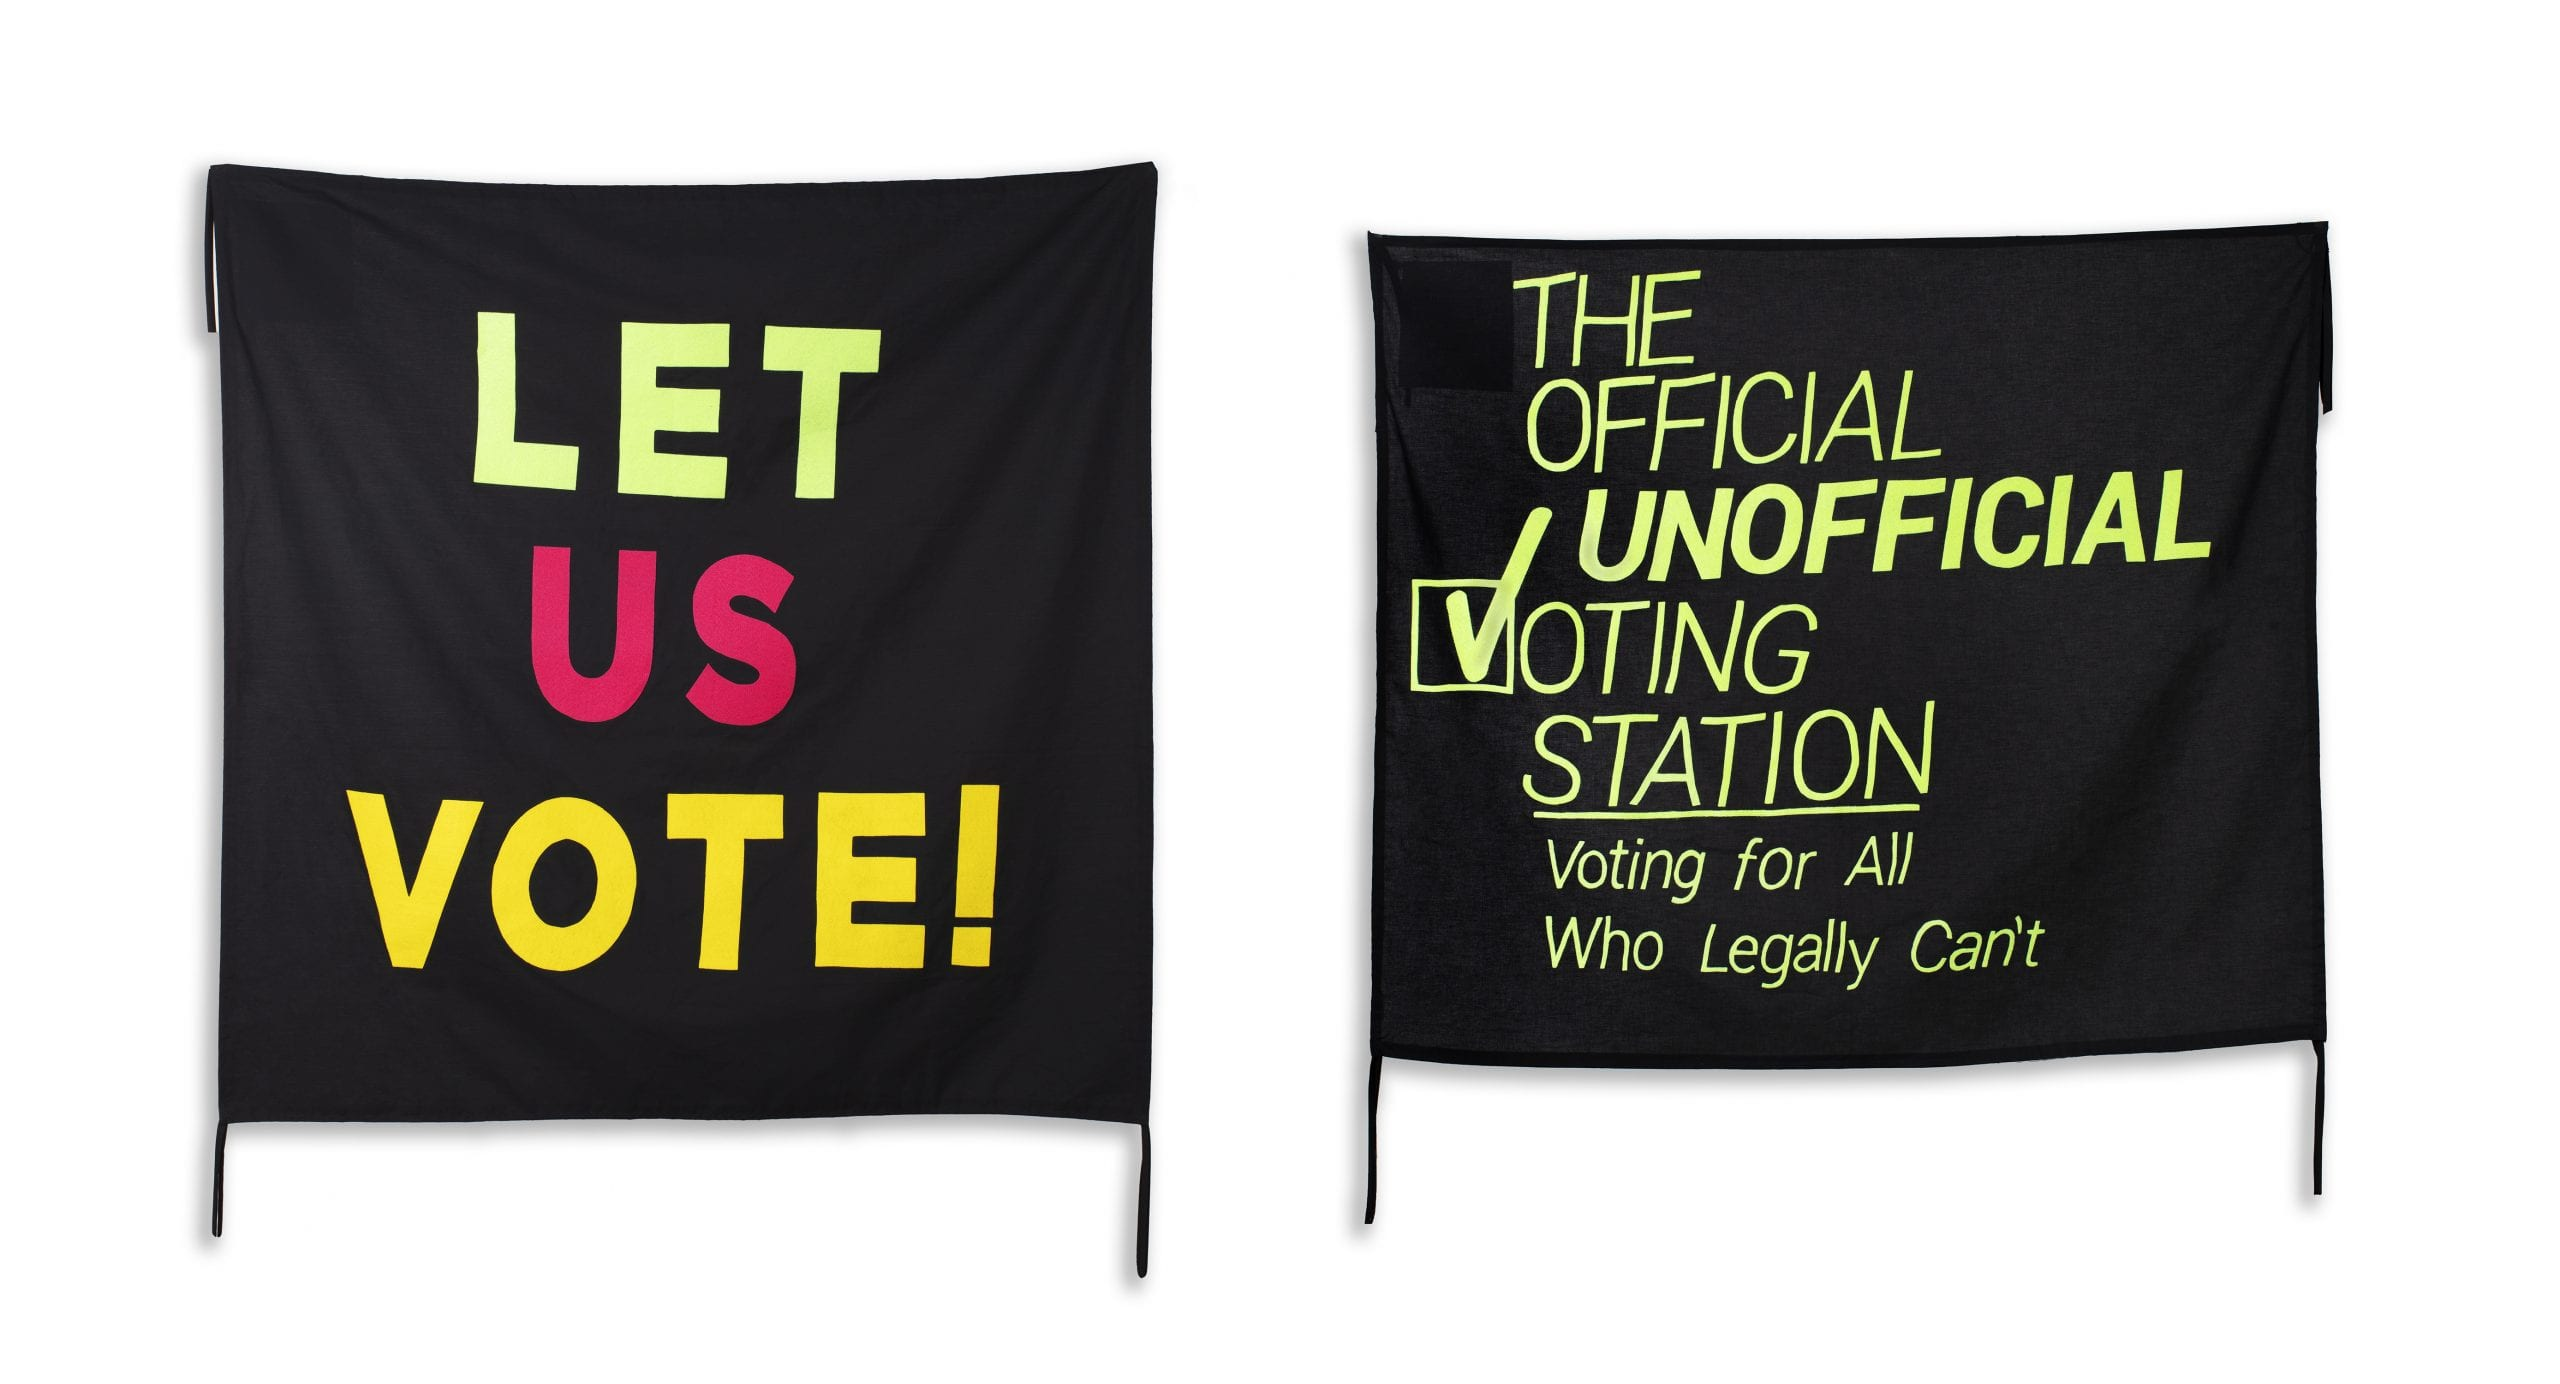 """One banner says """"Let Us Vote!"""" in bold, colorful neon letters on a black background; next to it, another banner says """"The Official Unofficial Voting Station: Voting for All Who Legally Can't"""" in neon green on black"""